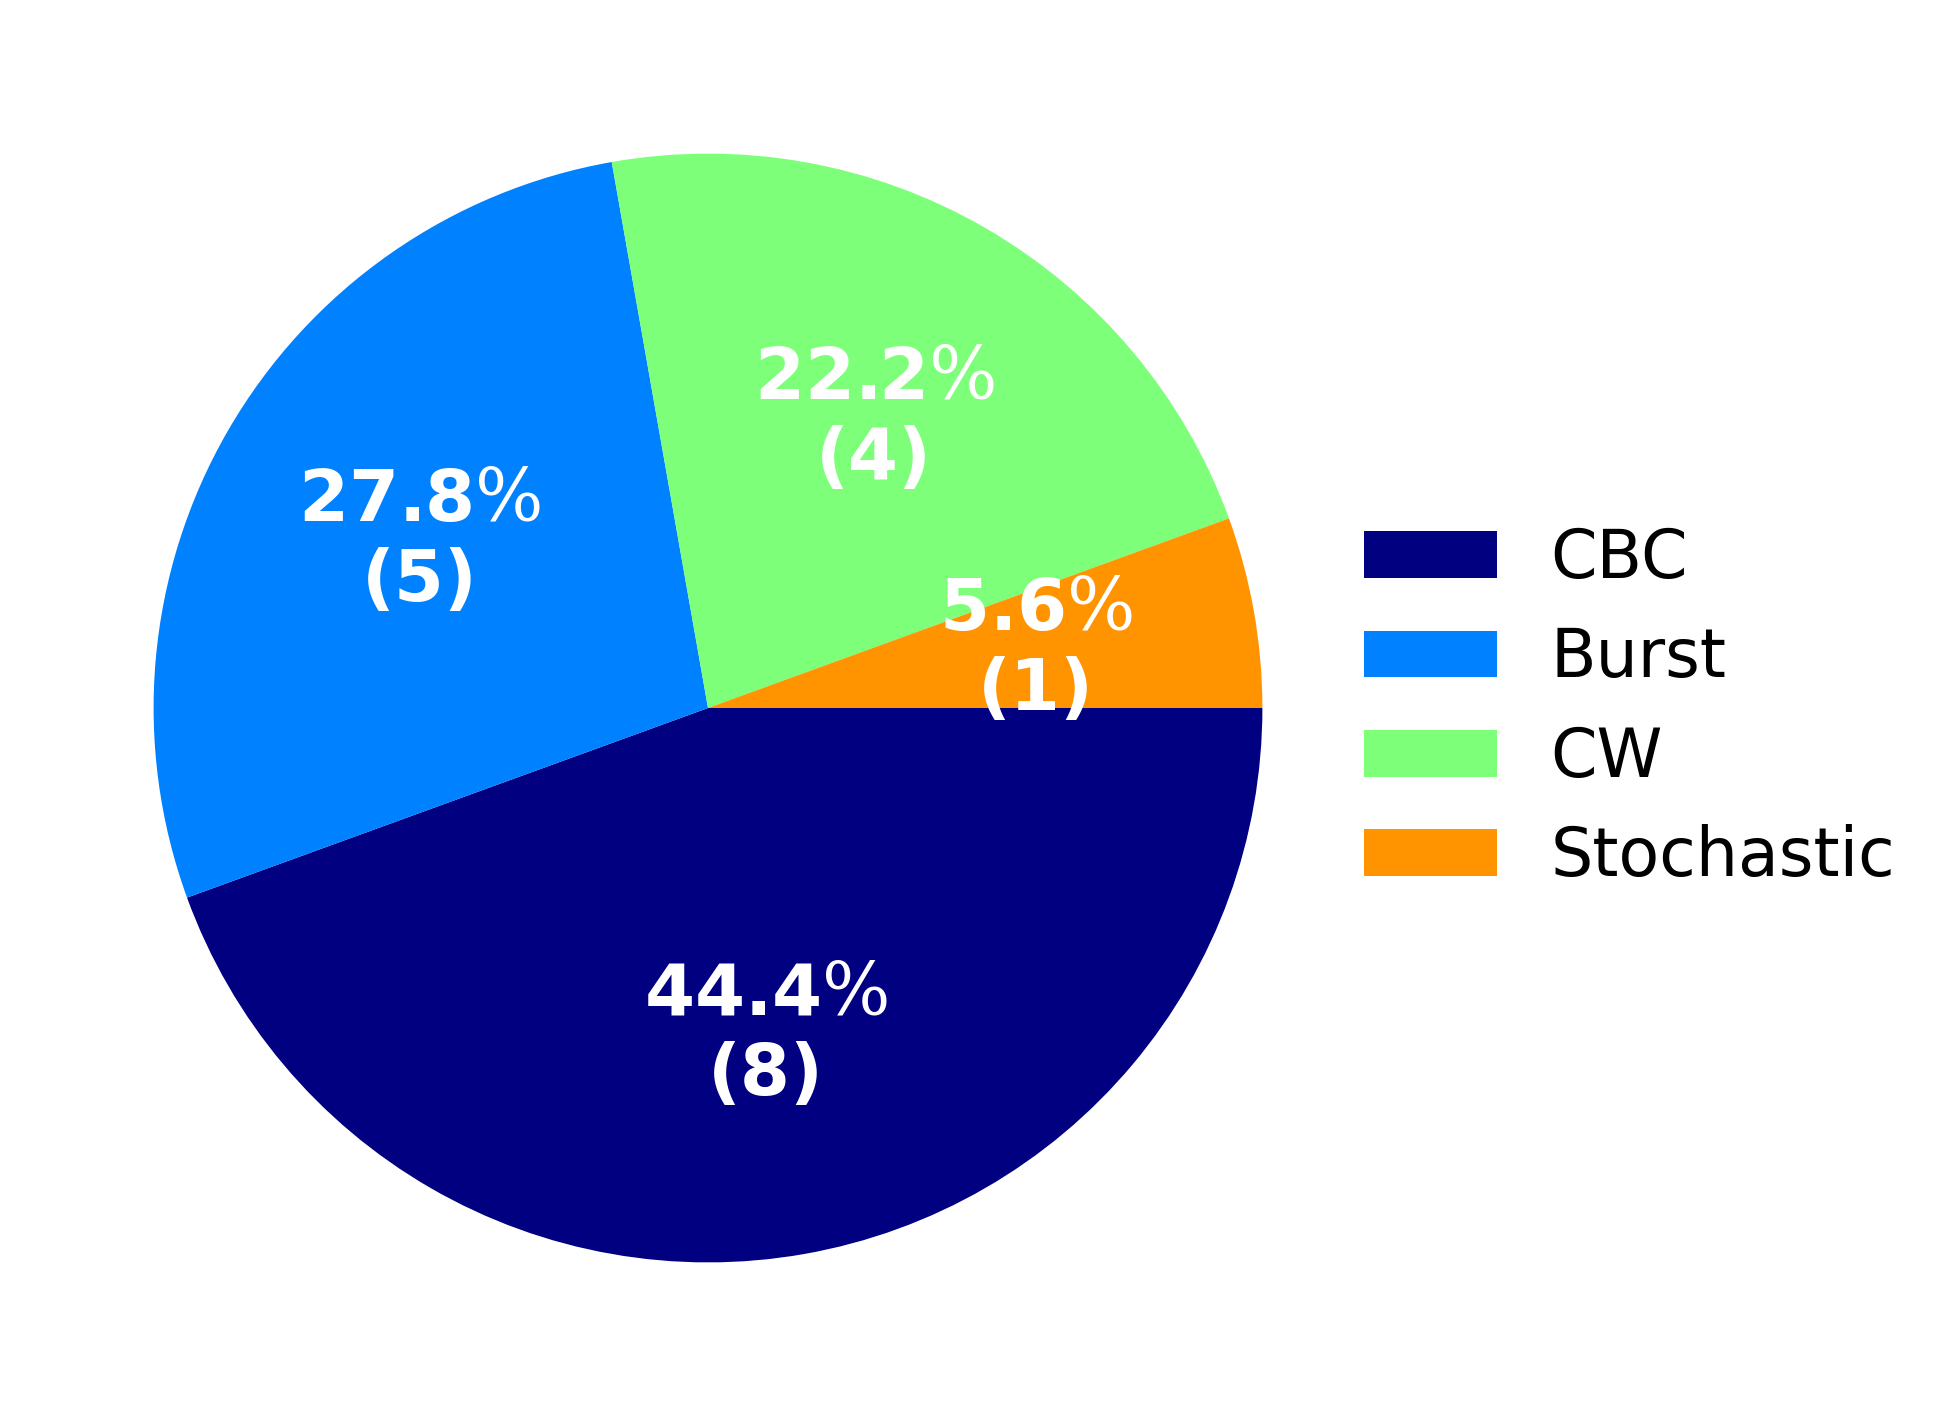 Fig. 5. Statistics of published papers for the each progenitor type targeted by the signal search.